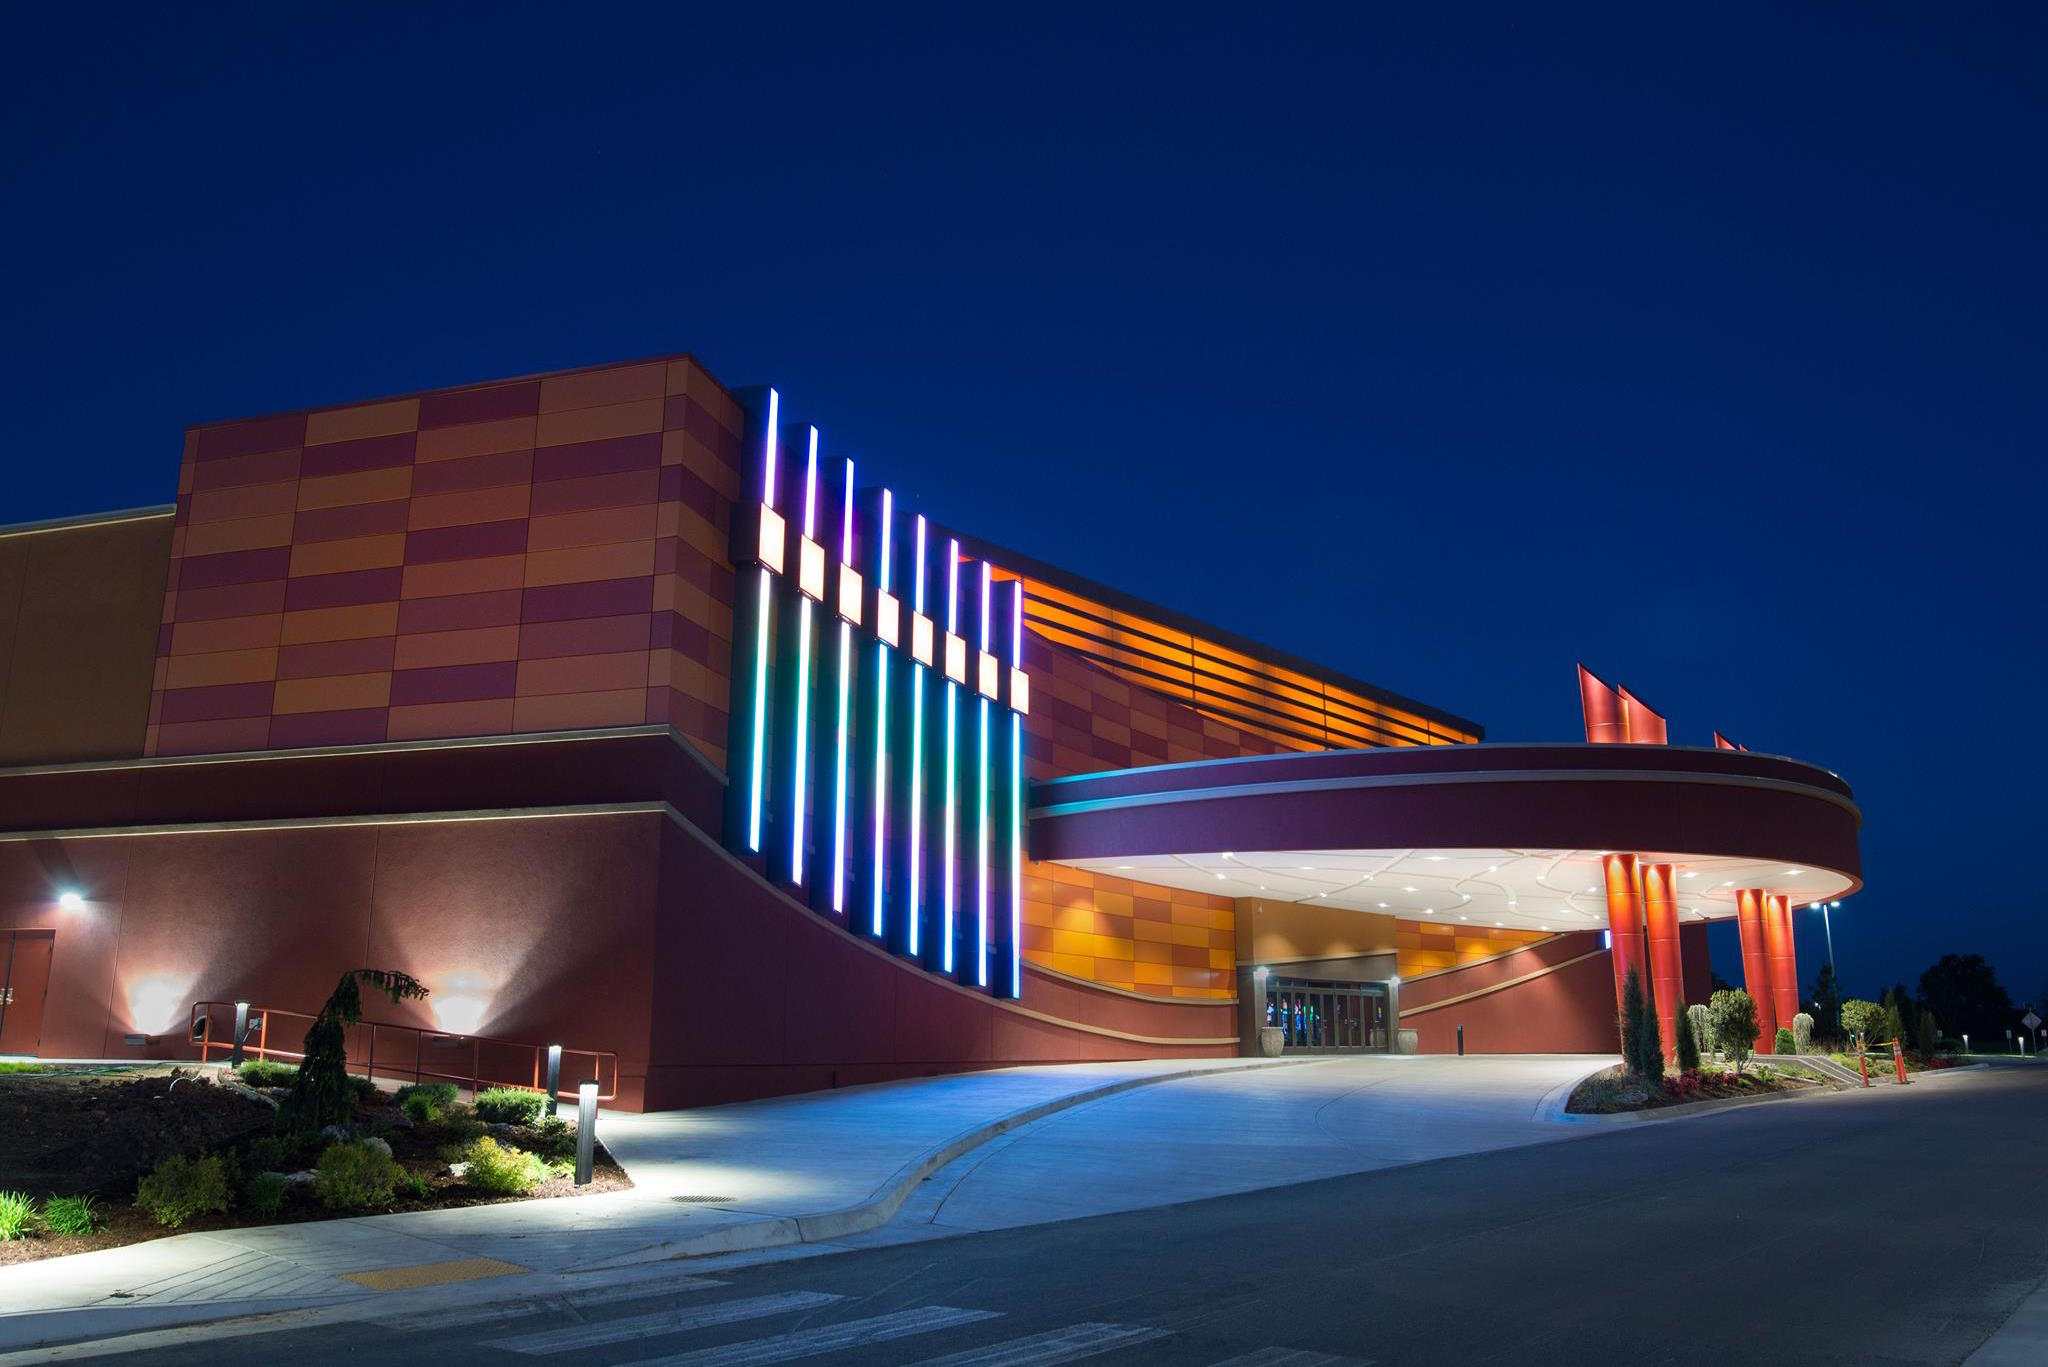 Security guards at Wyandotte Nation casino saved patron's life